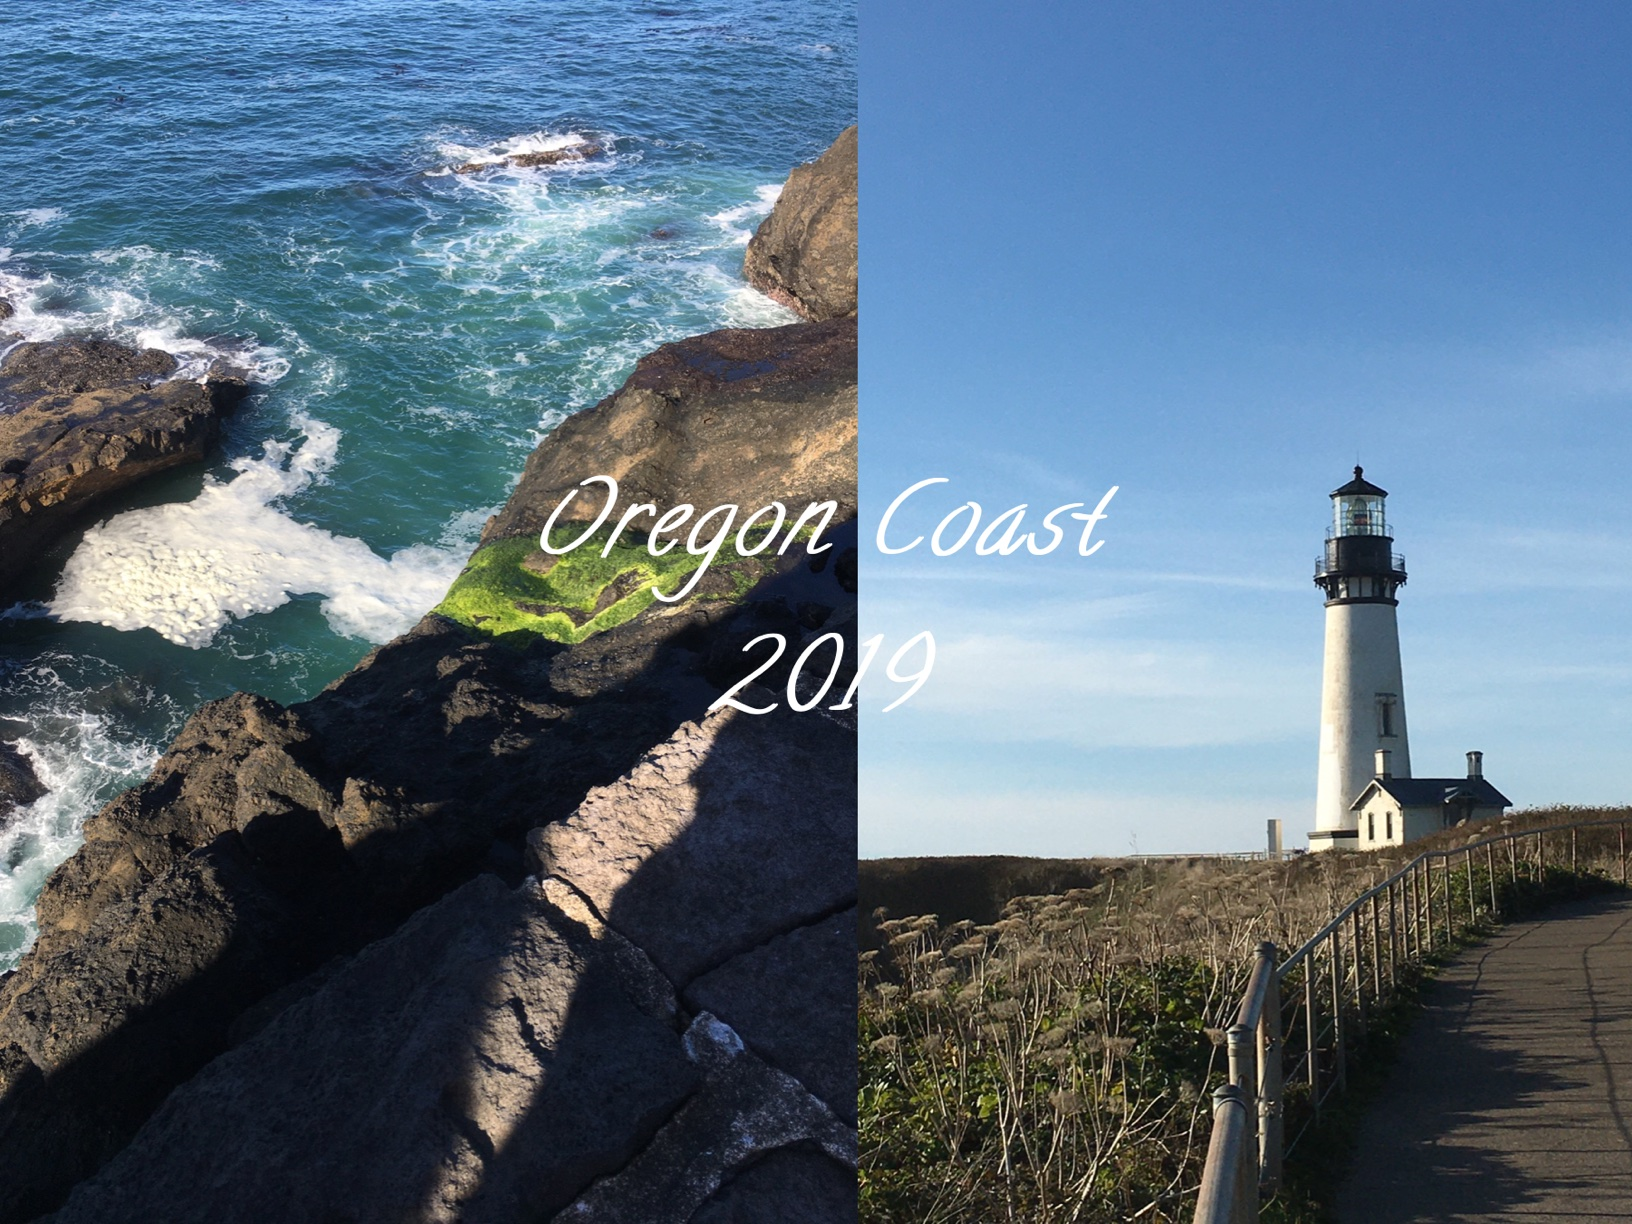 Oregon Coast 2019